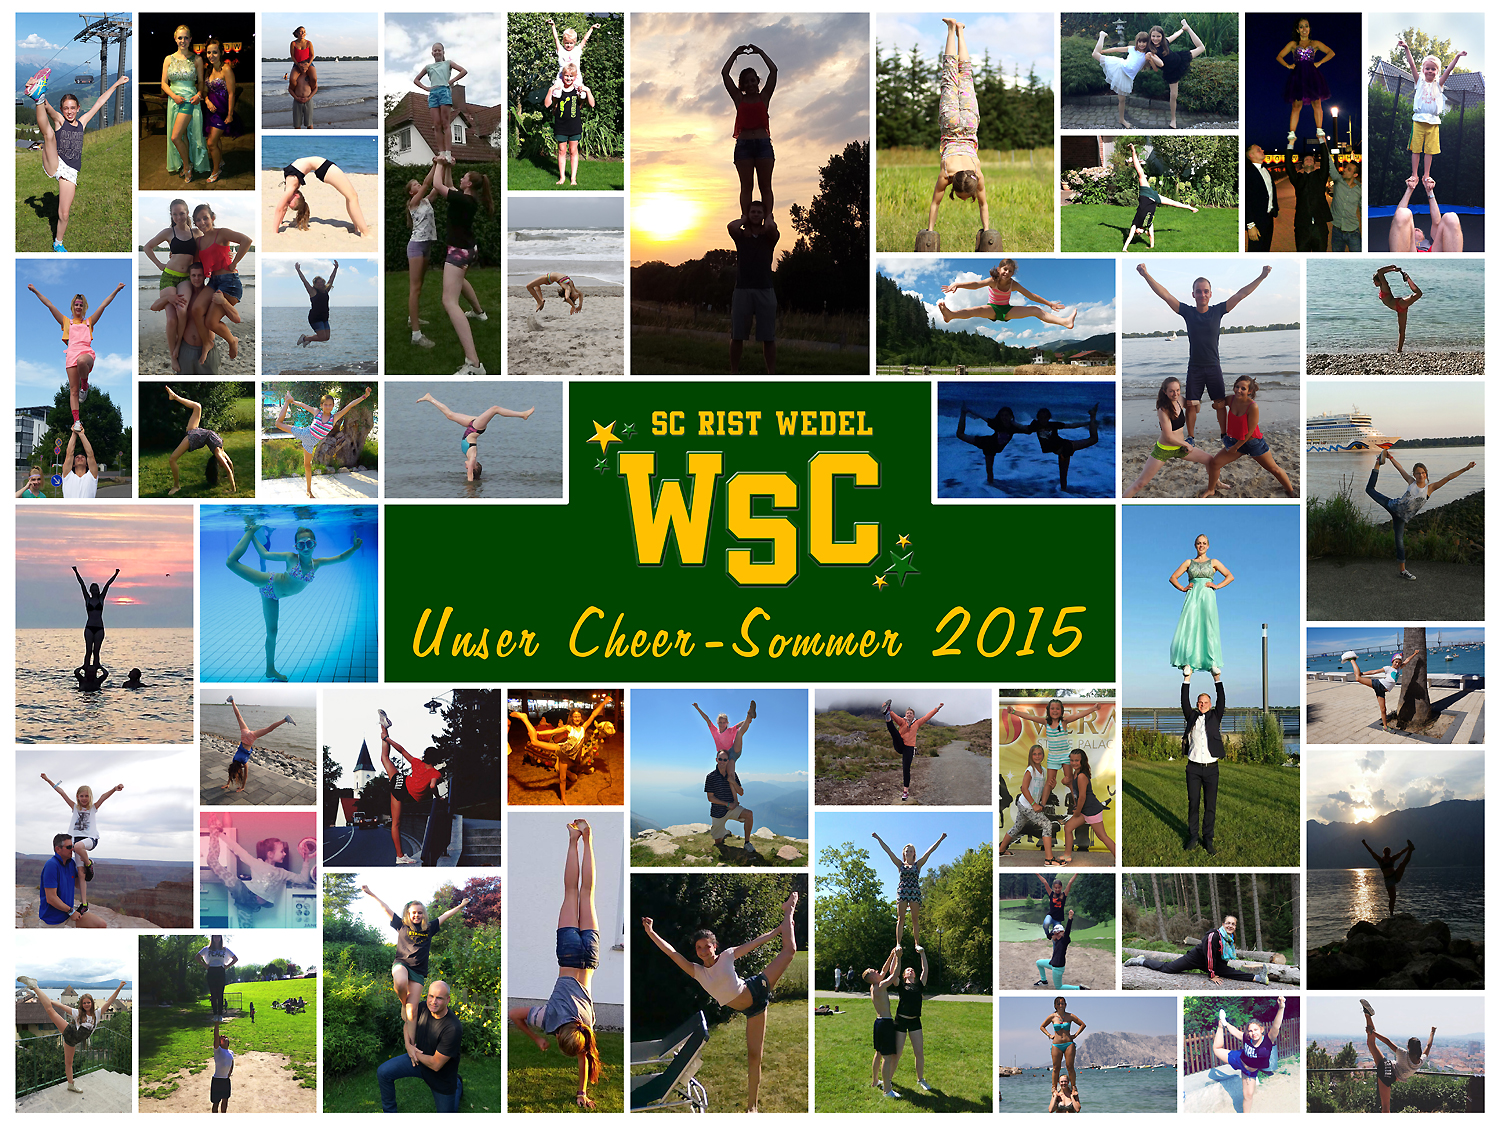 WSC Cheerleader: Unser Cheer-Sommer 2015